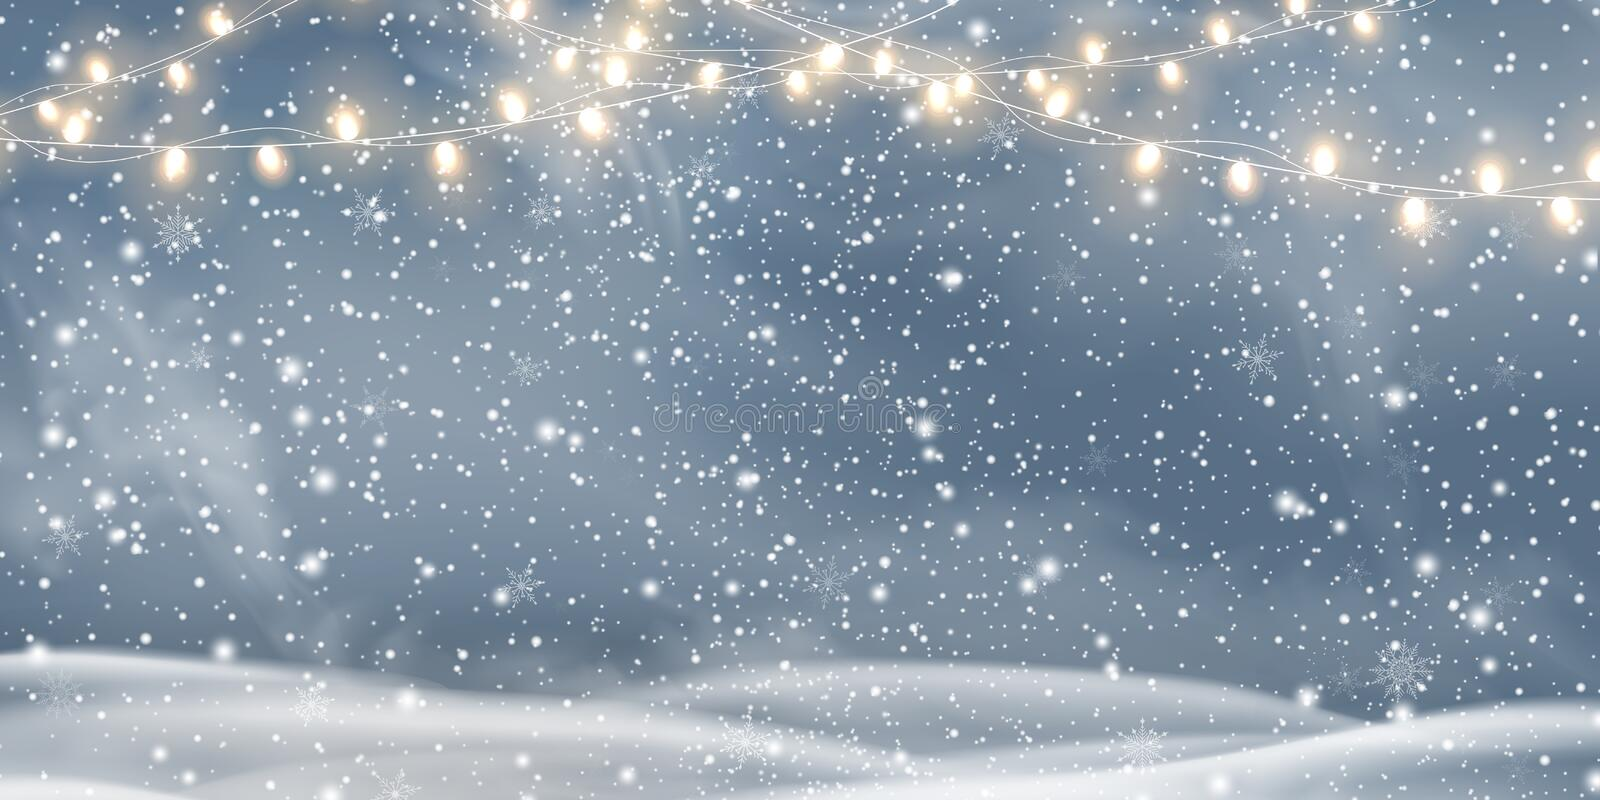 Vector night Christmas, Snowy landscape with light garlands, snow, snowflakes, snowdrift. Happy new year. Holiday winter stock illustration